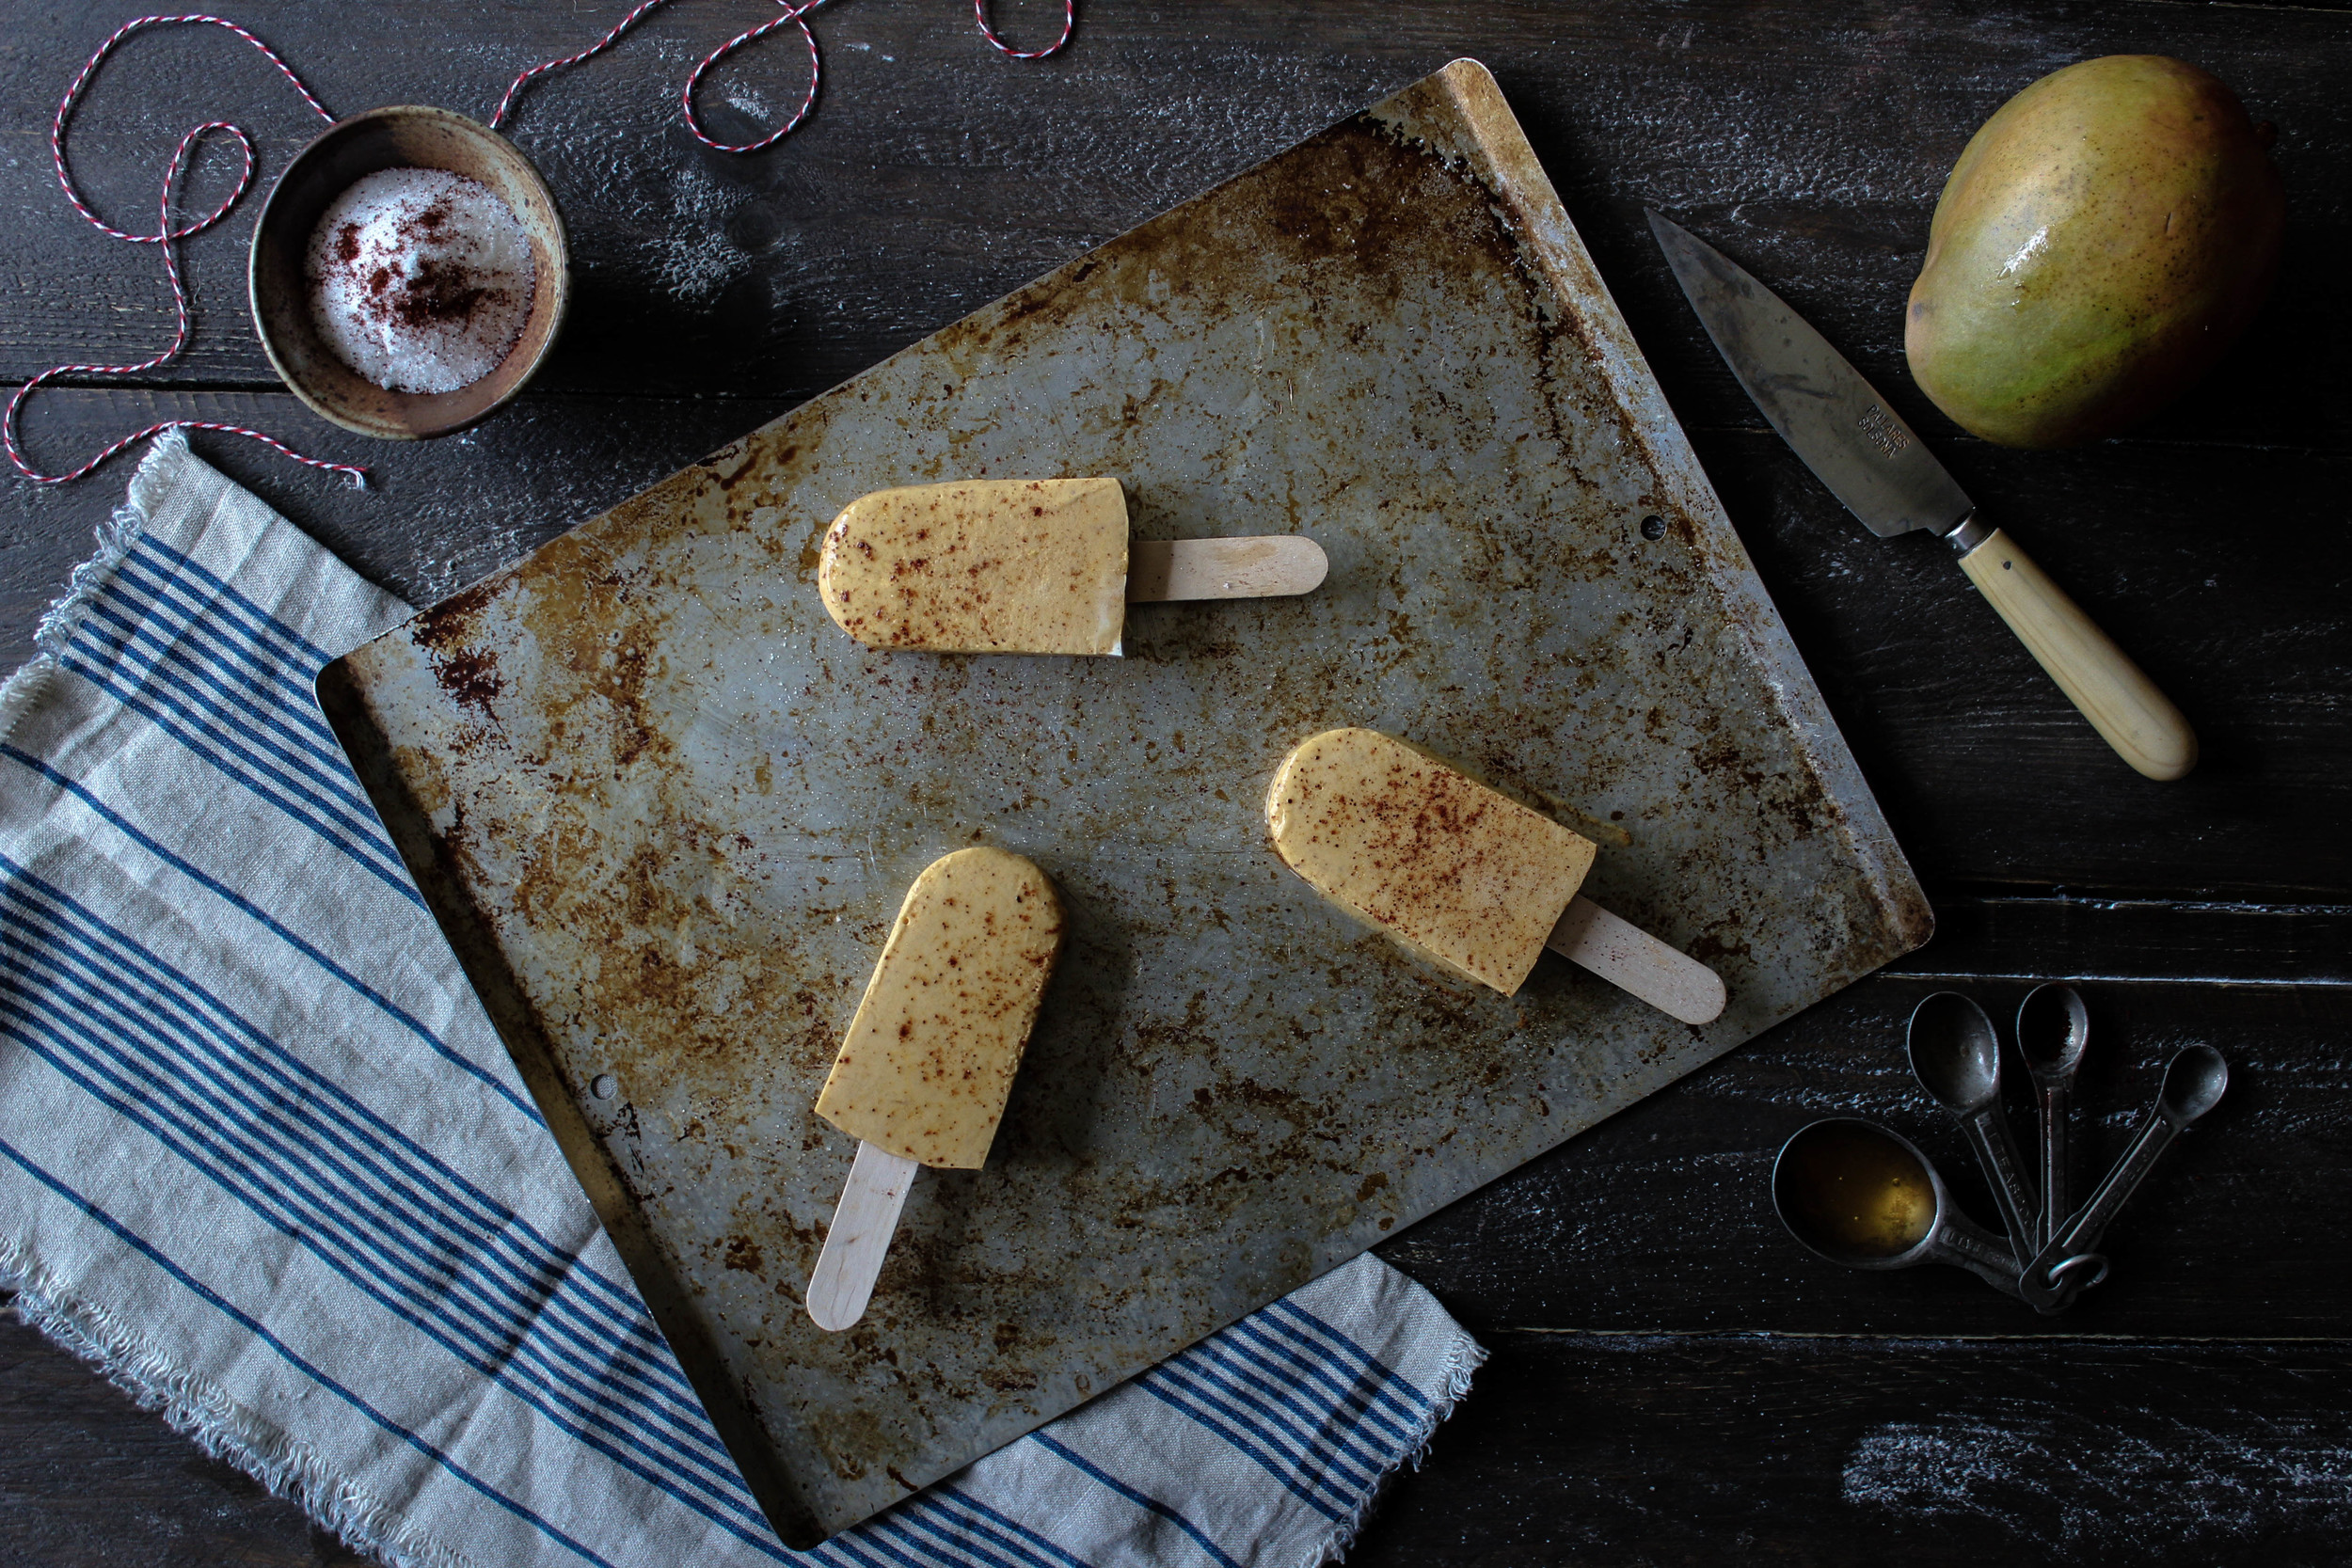 Mango Chili Popsicle for Popsicle Week!